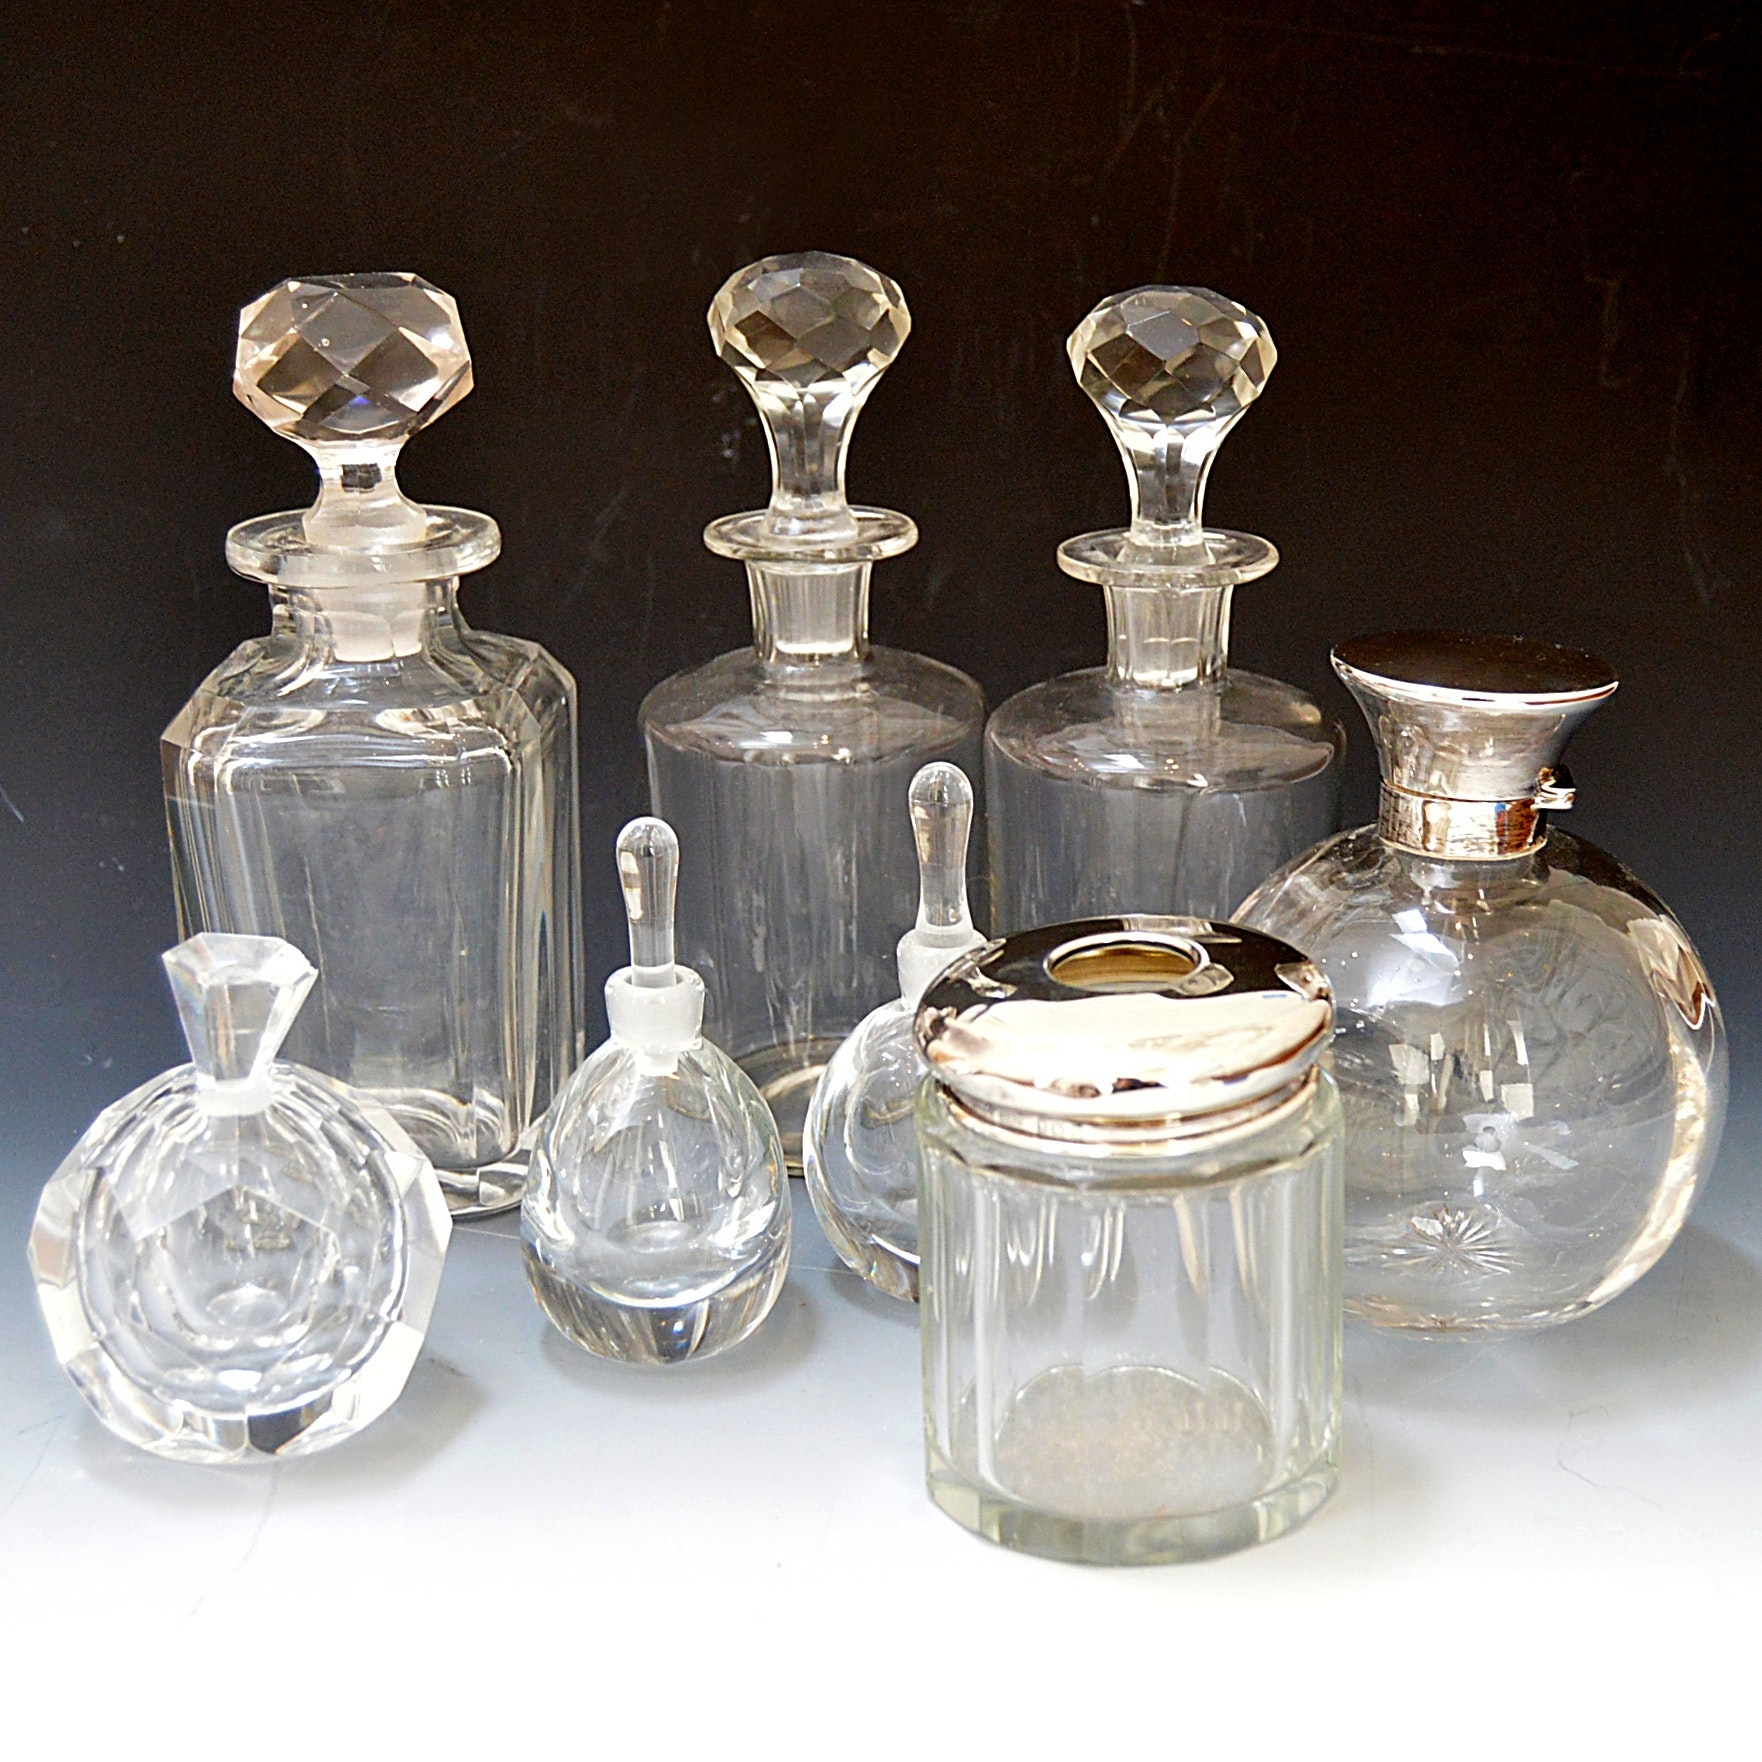 Vintage Glass Perfume Bottles